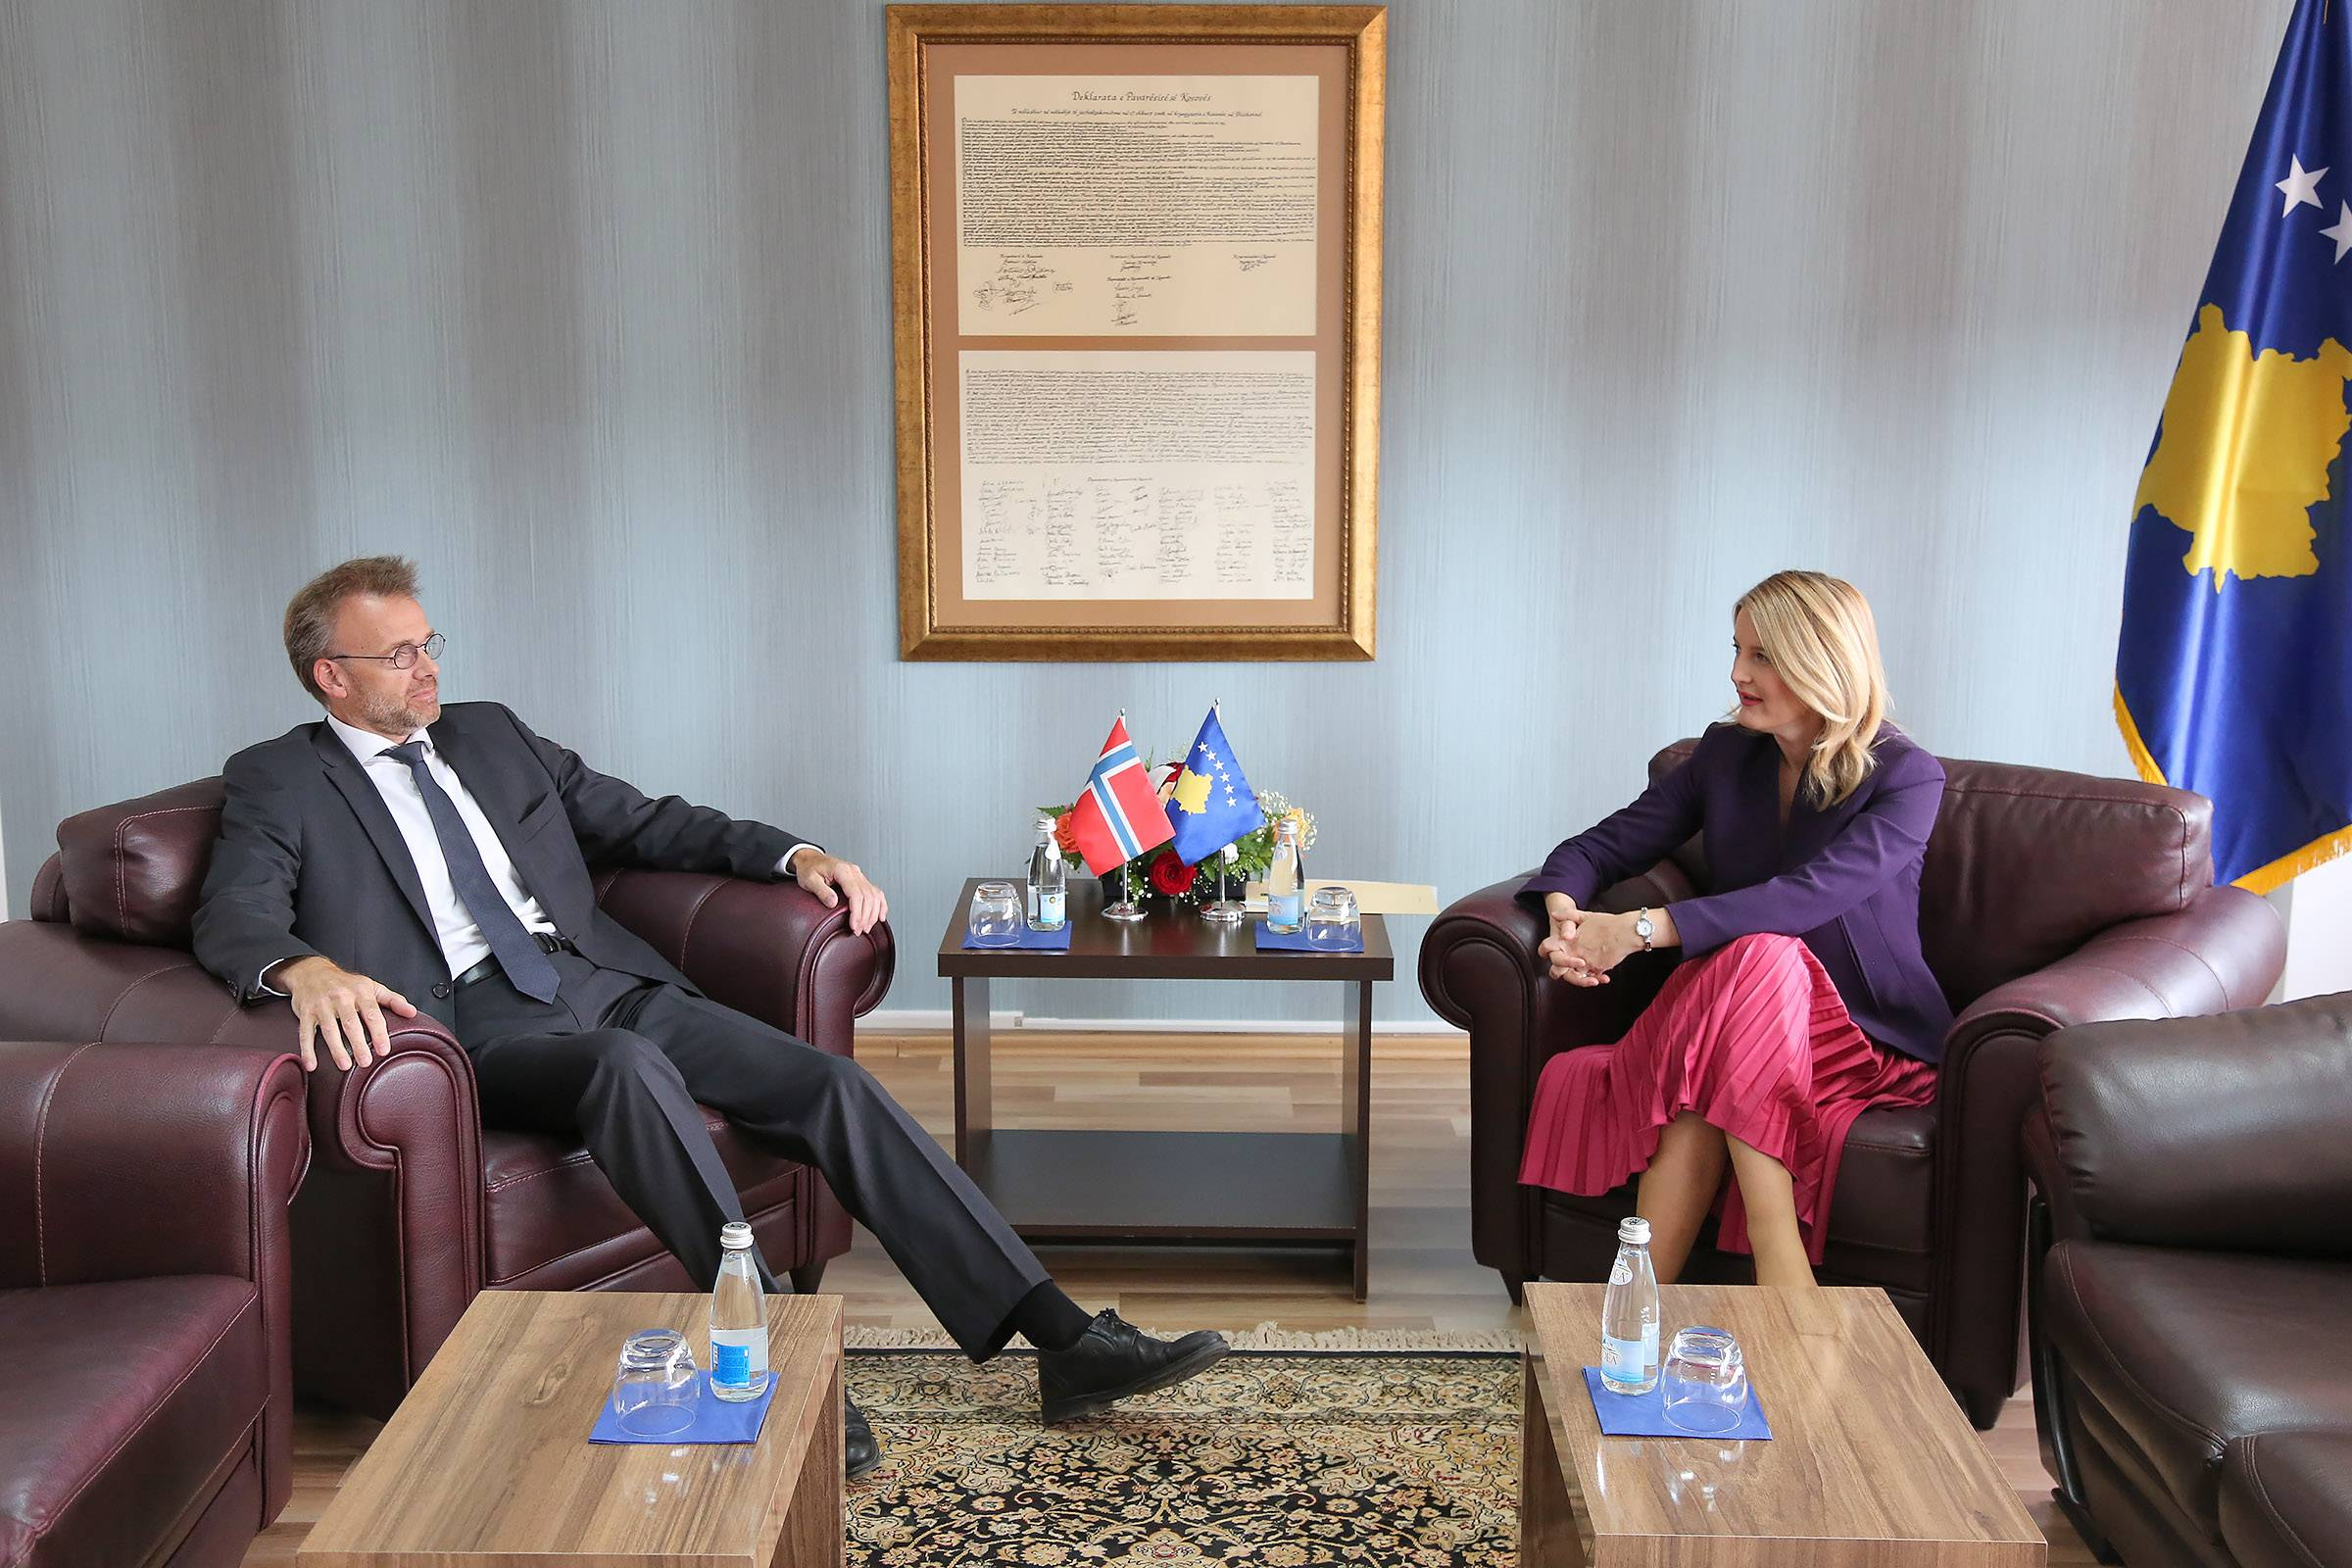 Minister Hoxha praised the commitment of Ambassador Sjaastad: Norway's support is a value of the state of Kosovo